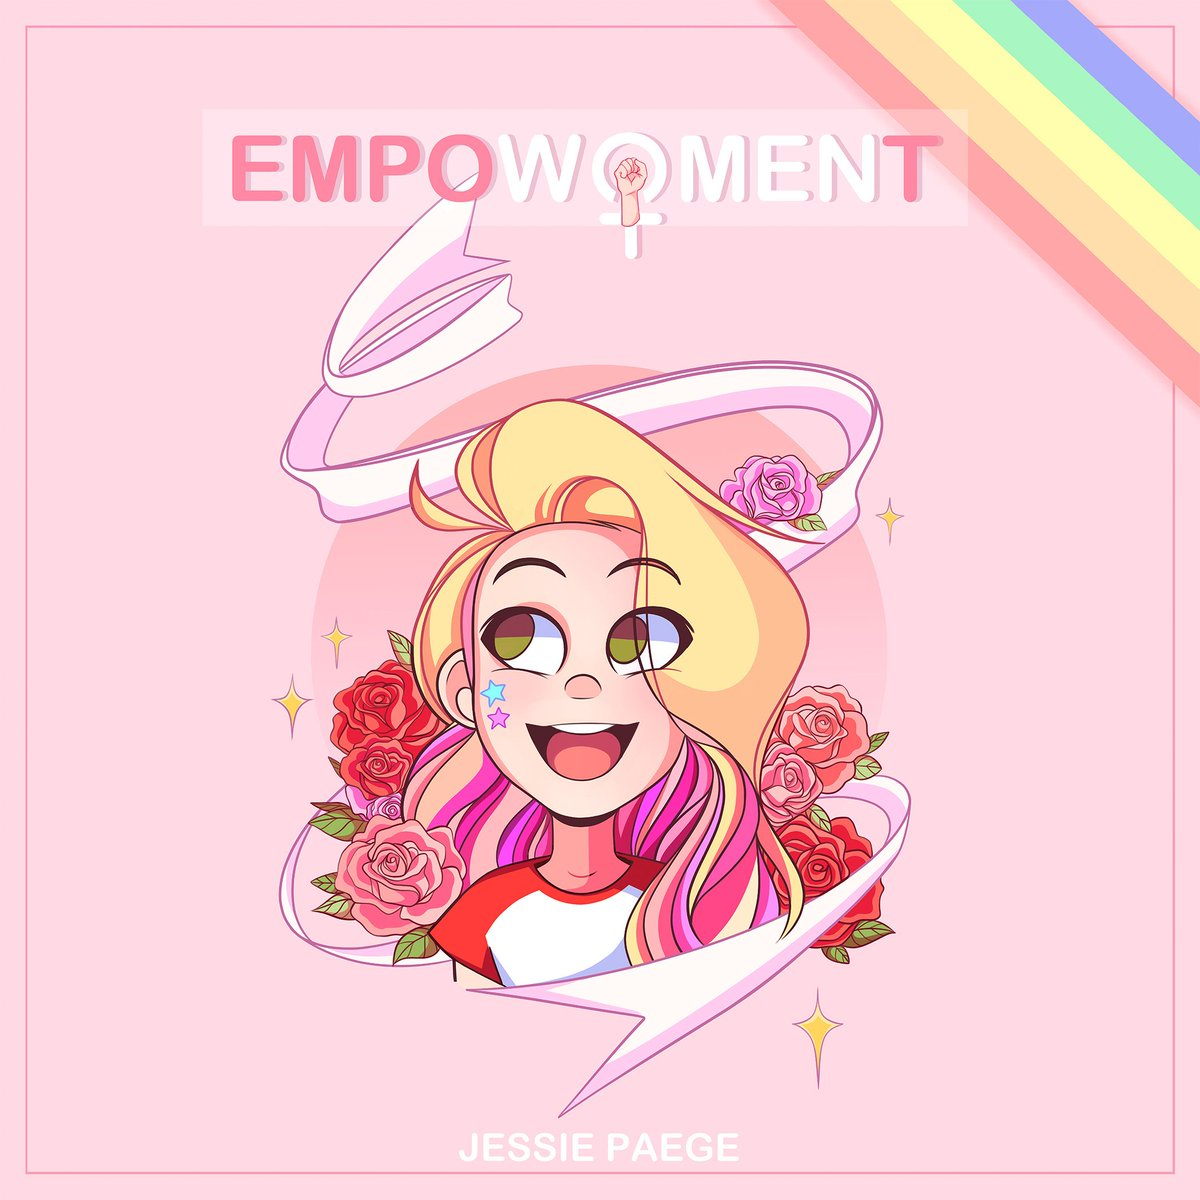 """IT'S OUT! @jessiepaege's compilation """"empoWOMENt"""" featuring all incredible female artists is now available on @iTunes.. enjoy!  https://itunes.apple.com/us/album/empowoment/1429117343?ls=1&app=itunes…"""